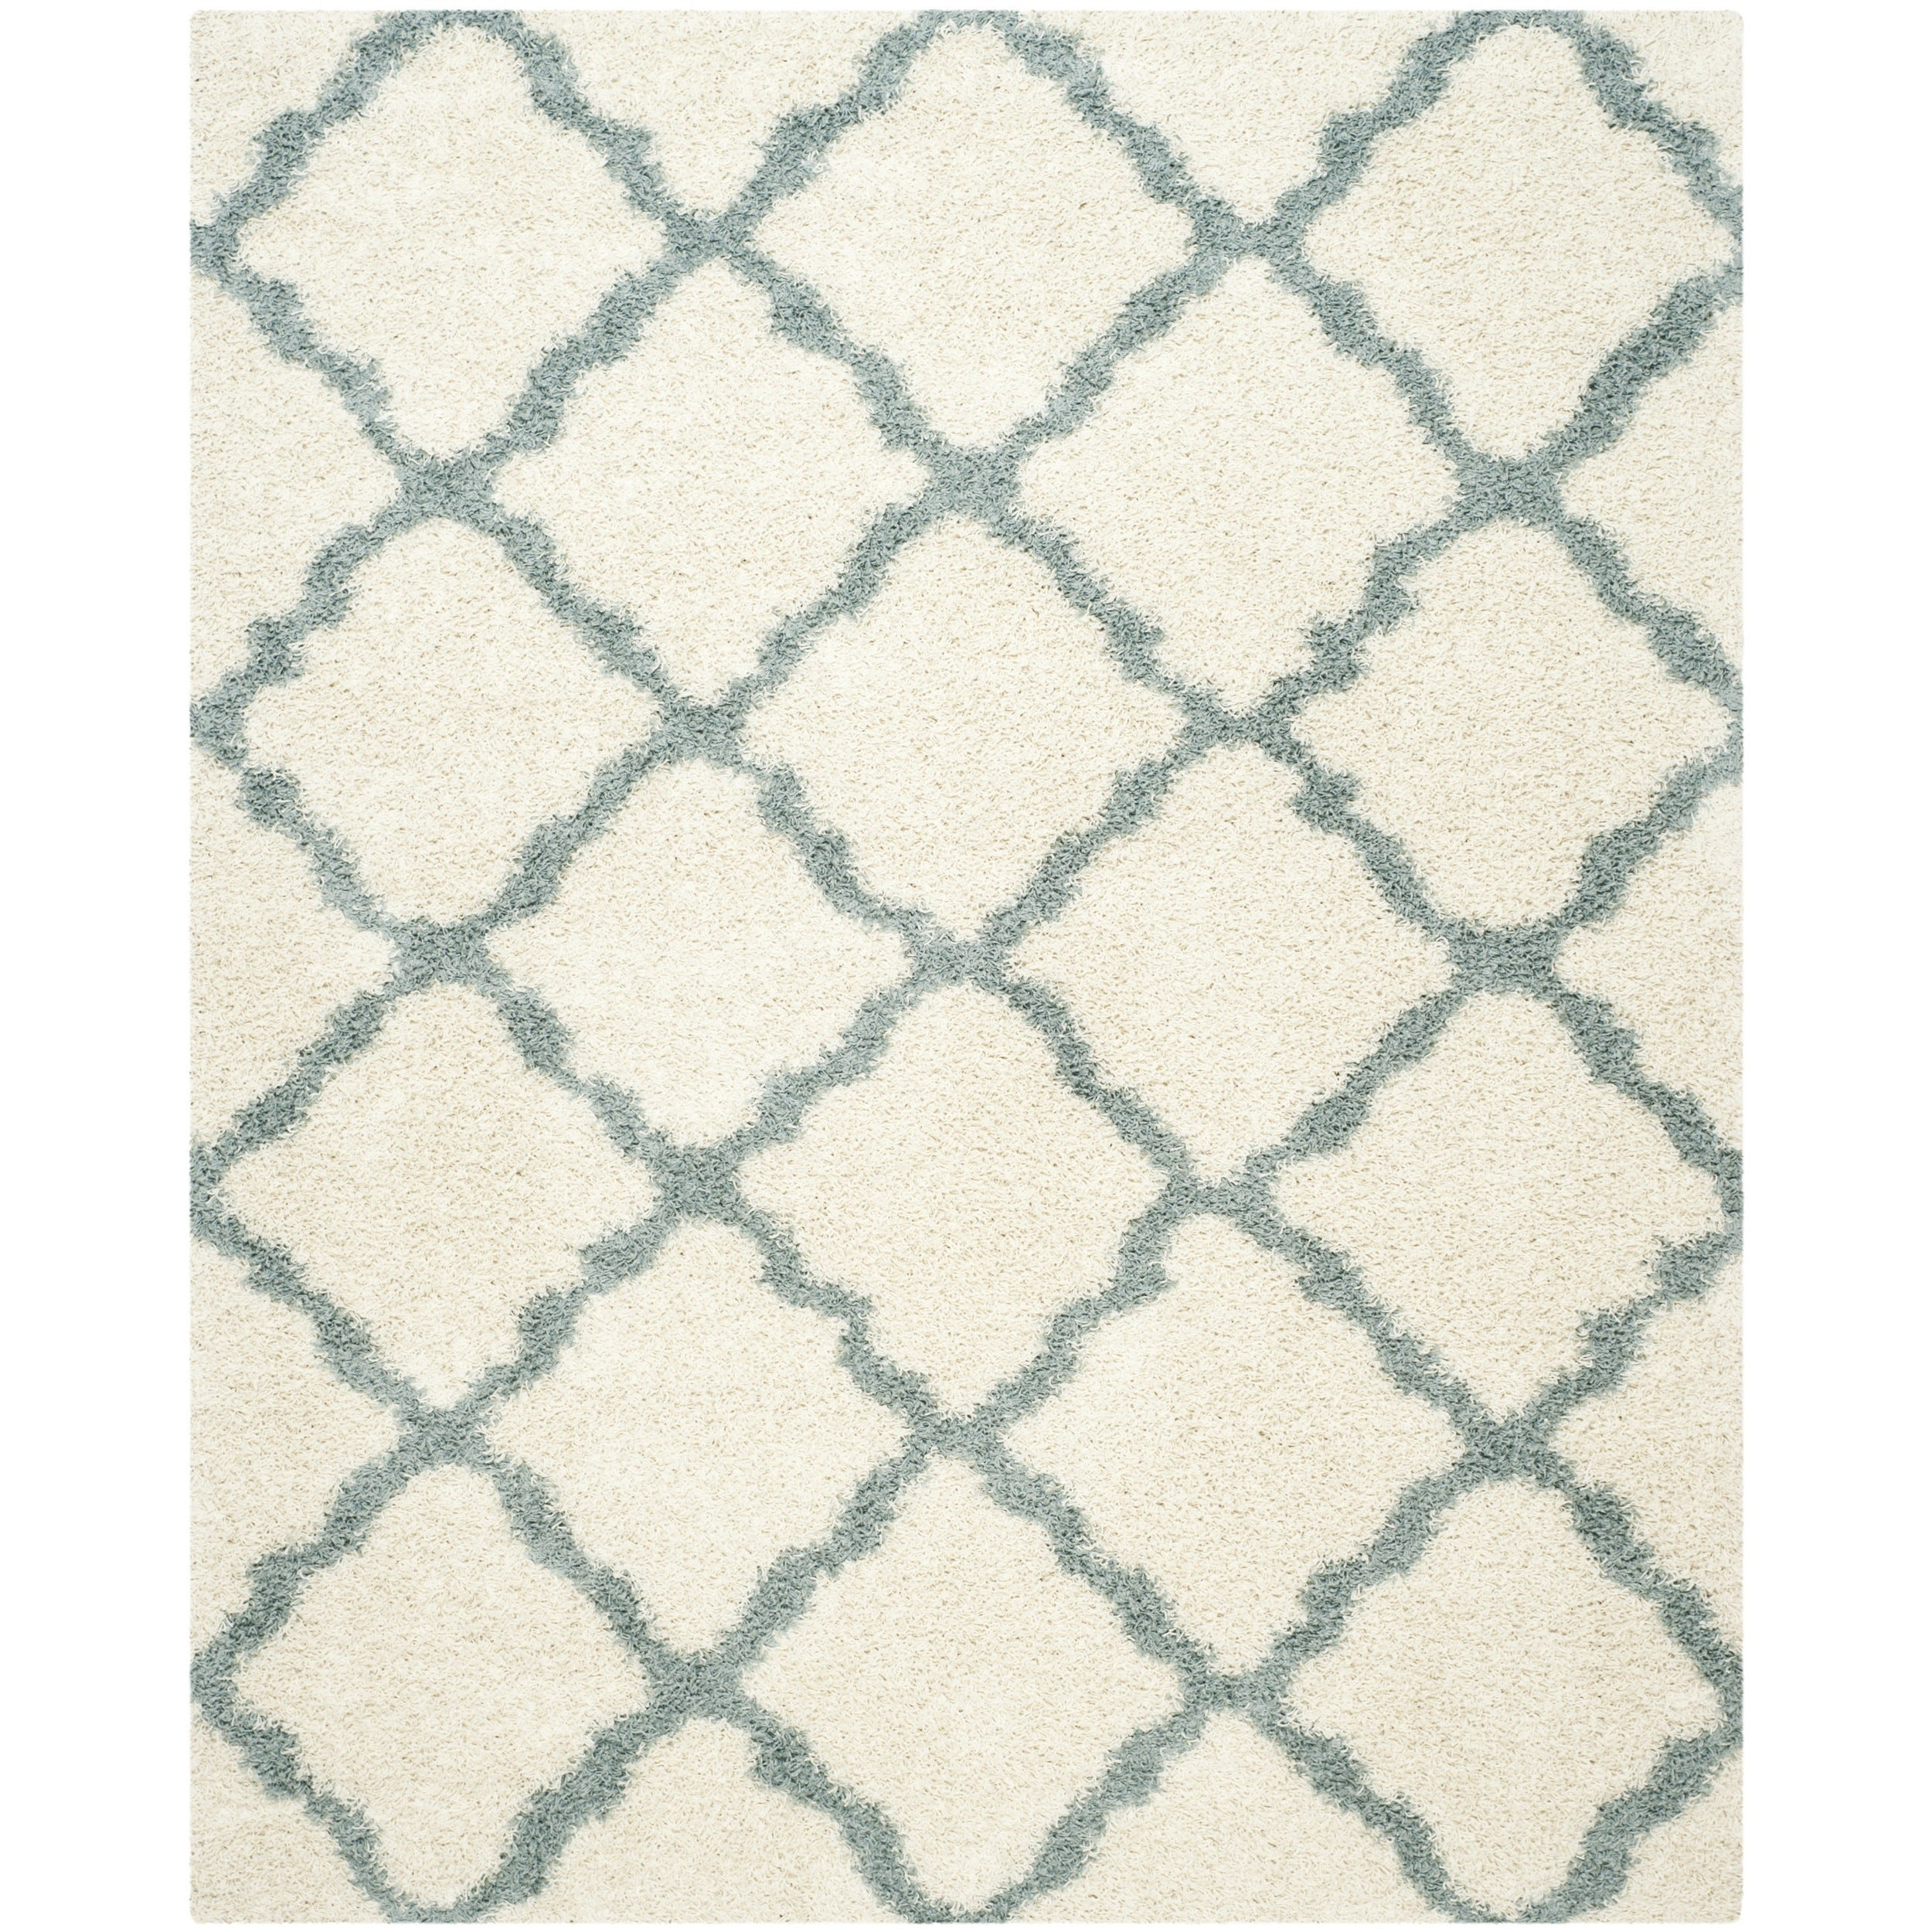 light reviews baby dark l rug blueivory safavieh shaggy ivory blue home ideas area design dhurries